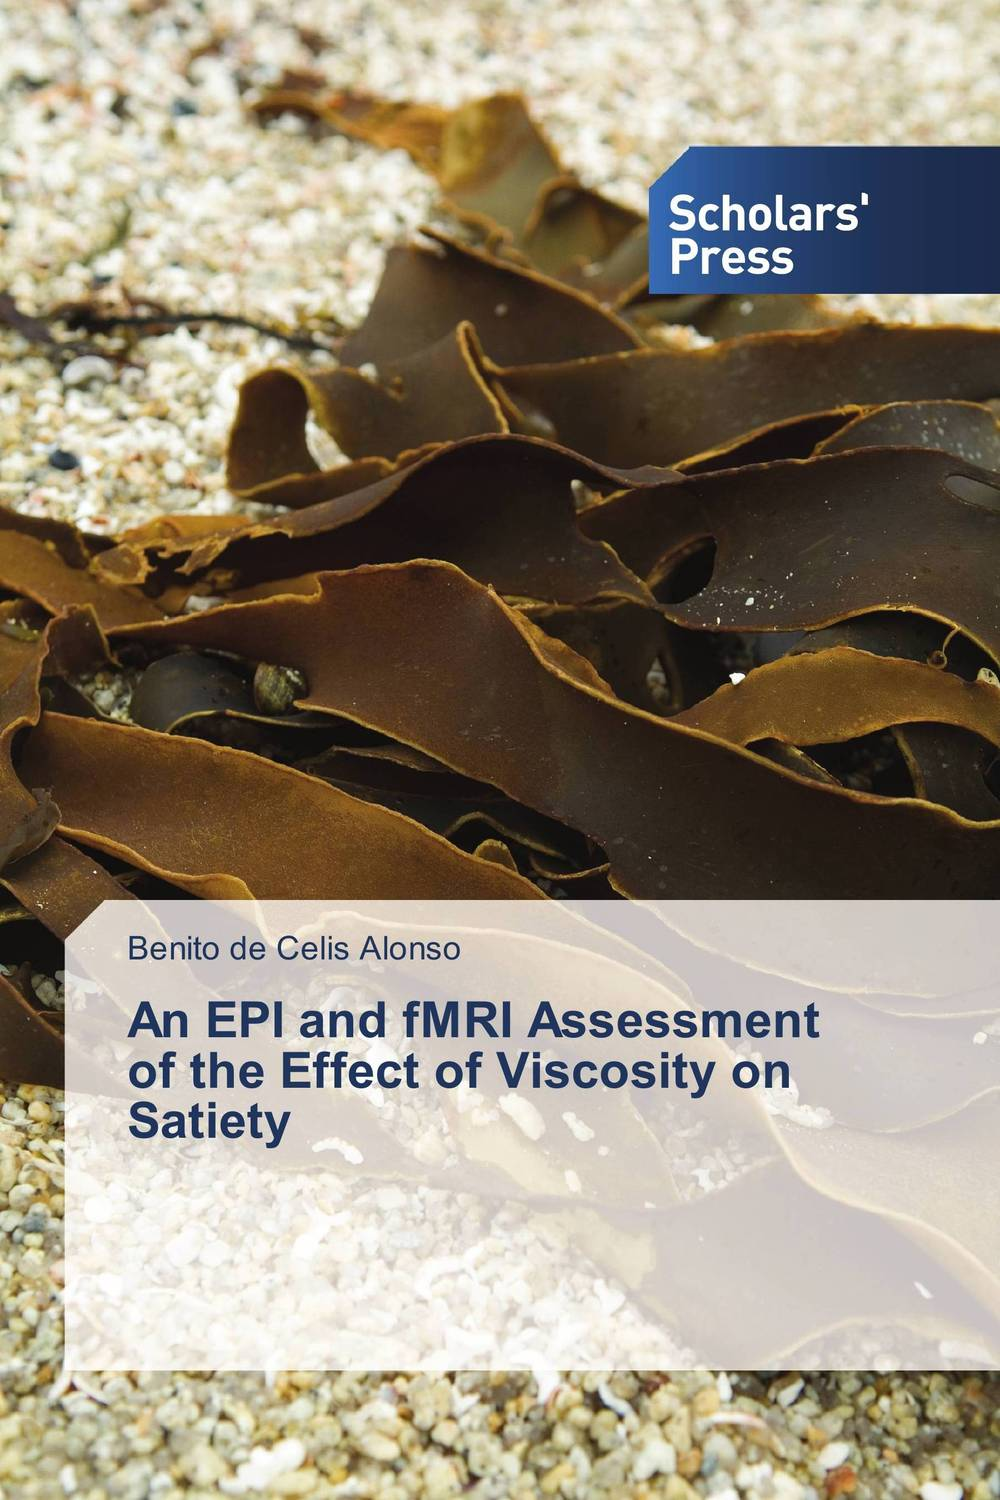 An EPI and fMRI Assessment of the Effect of Viscosity on Satiety using crayfish waste meal and poultry offal meal in place of fishmeal